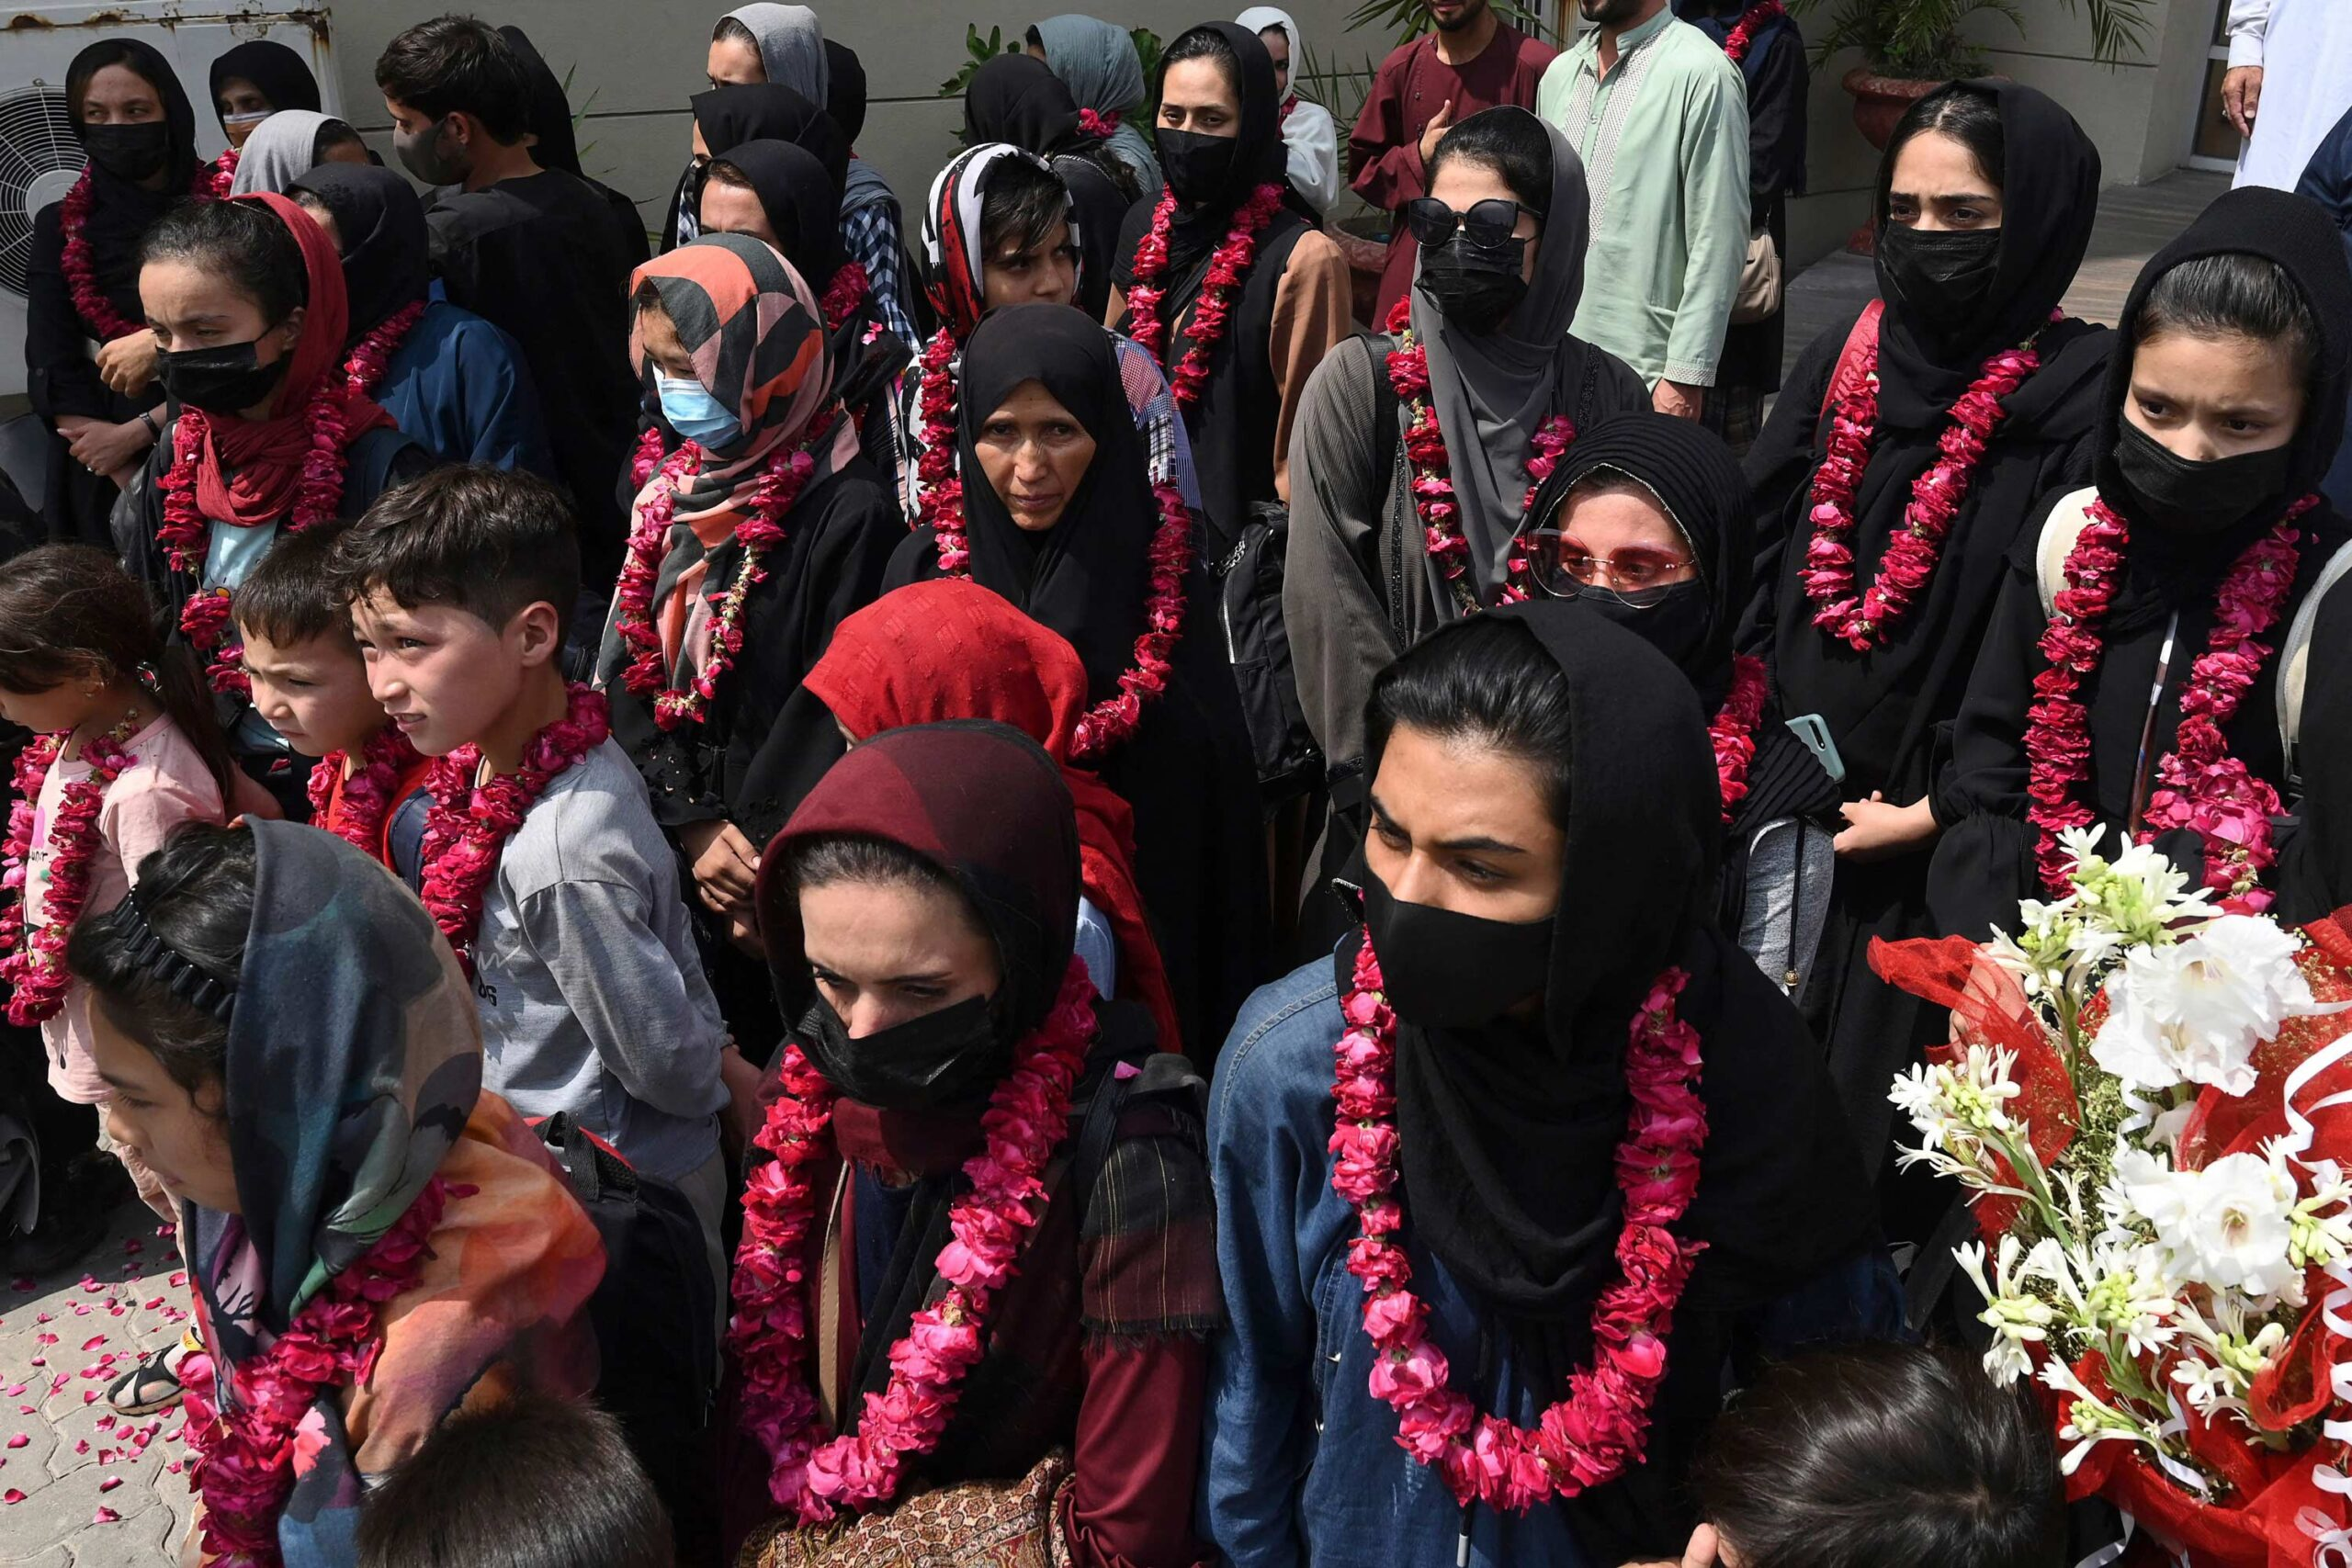 <i>ARIF ALI/AFP/Getty Images</i><br/>Members of Afghanistan's girls football team have arrived in Pakistan.